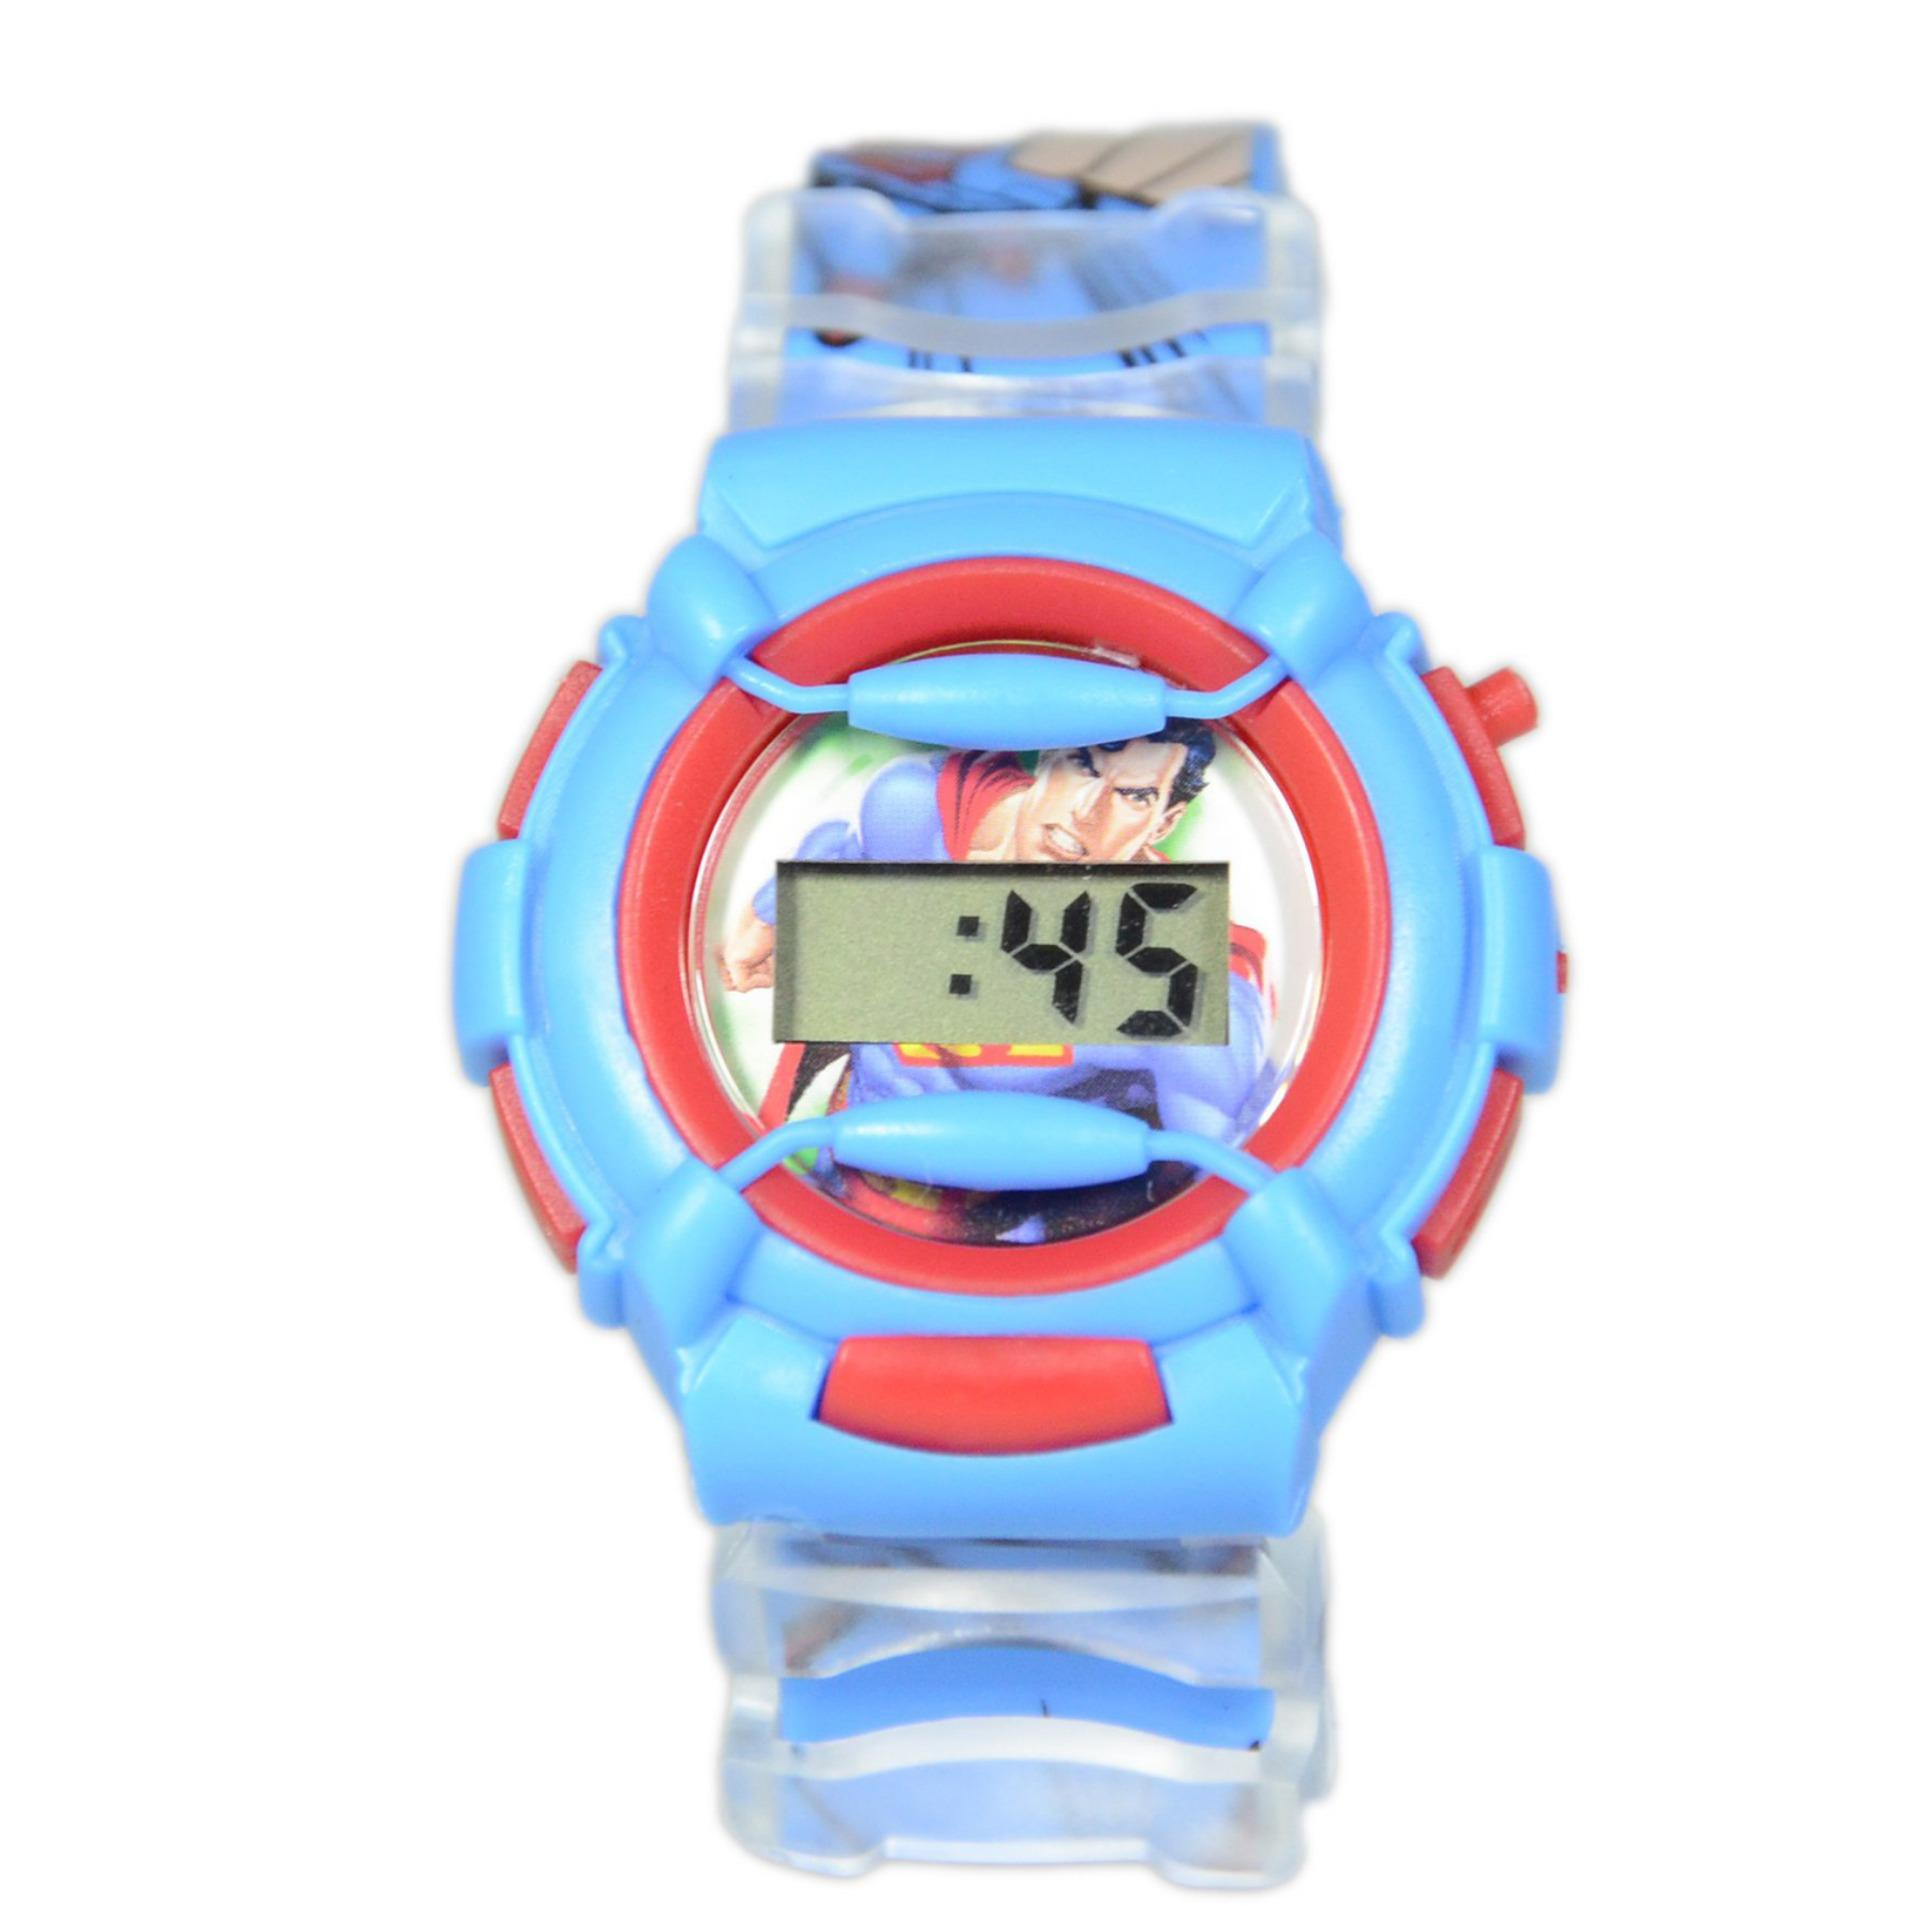 DnB COLLECTION Jam Tangan Anak Sporty Baby-G Superman - Biru Muda